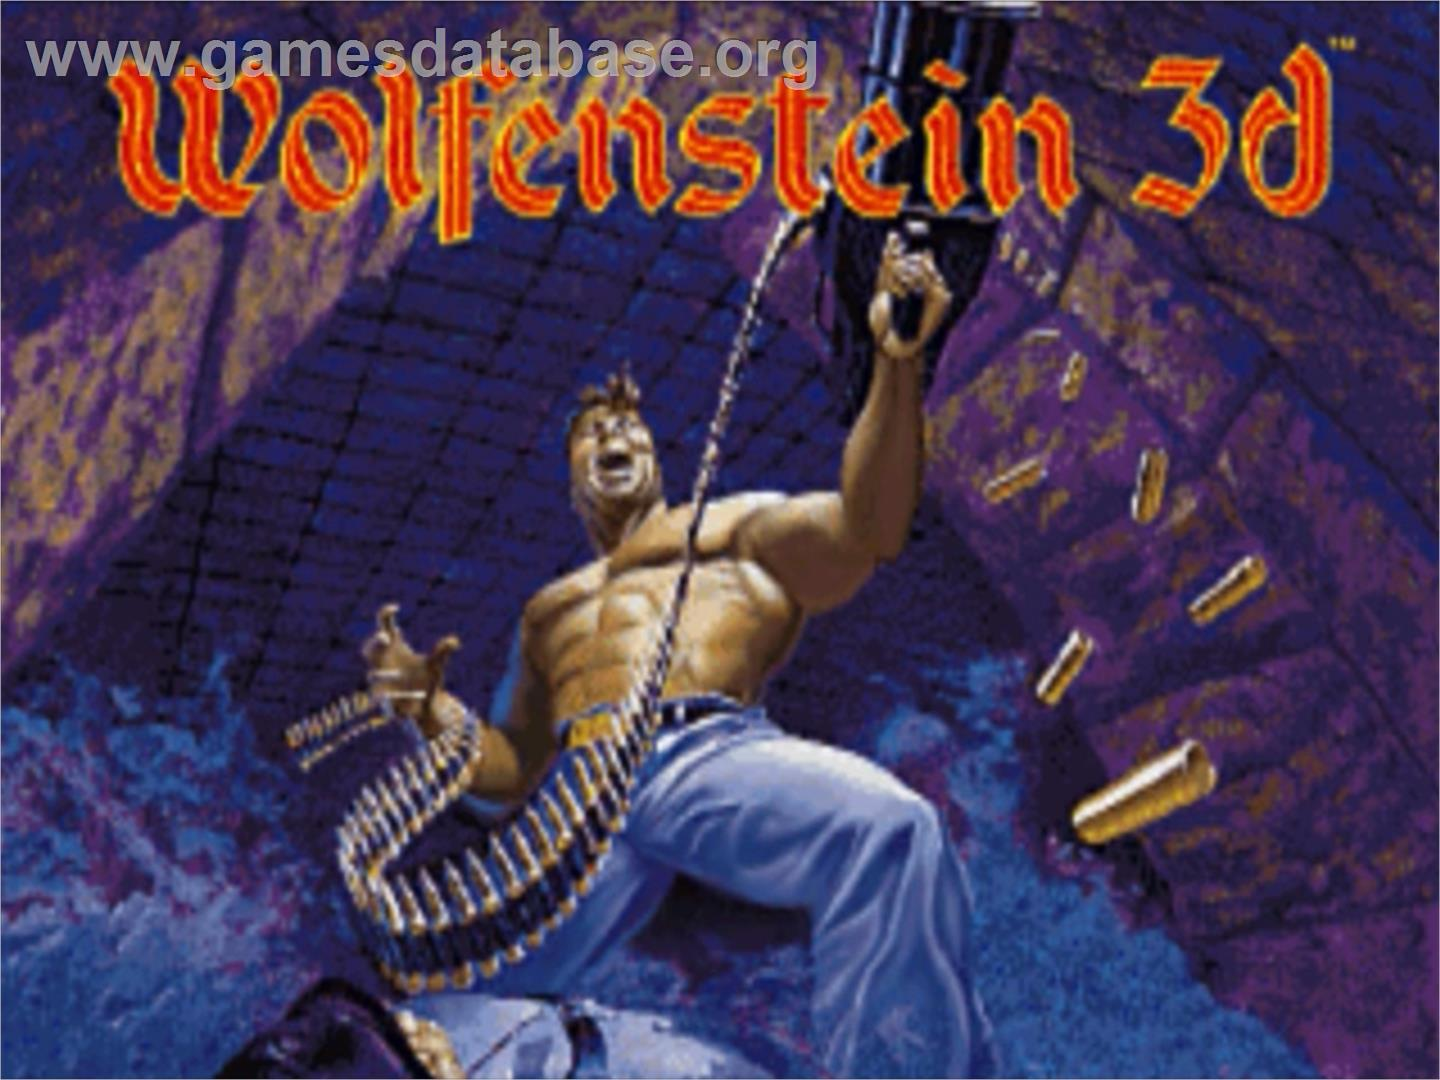 Wolfenstein 3d panasonic 3do games database for Wolfenstein 3d